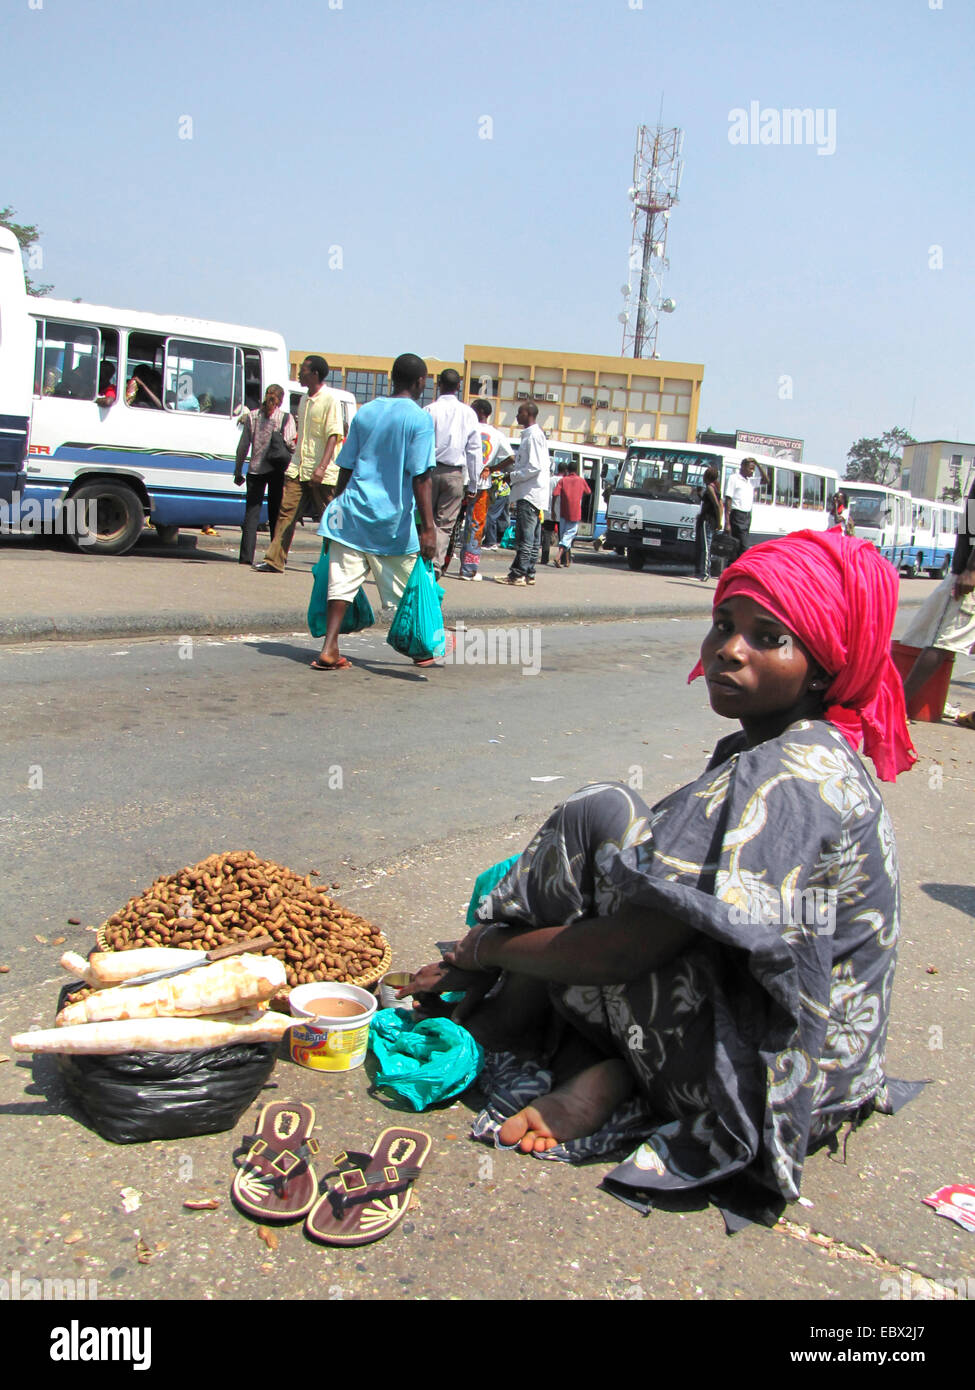 street scene in the capital city; young woman on the ground selling cassava and peanuts to passengers at the central bus station near the market, Burundi, Bujumbura marie, Bujumbura Stock Photo